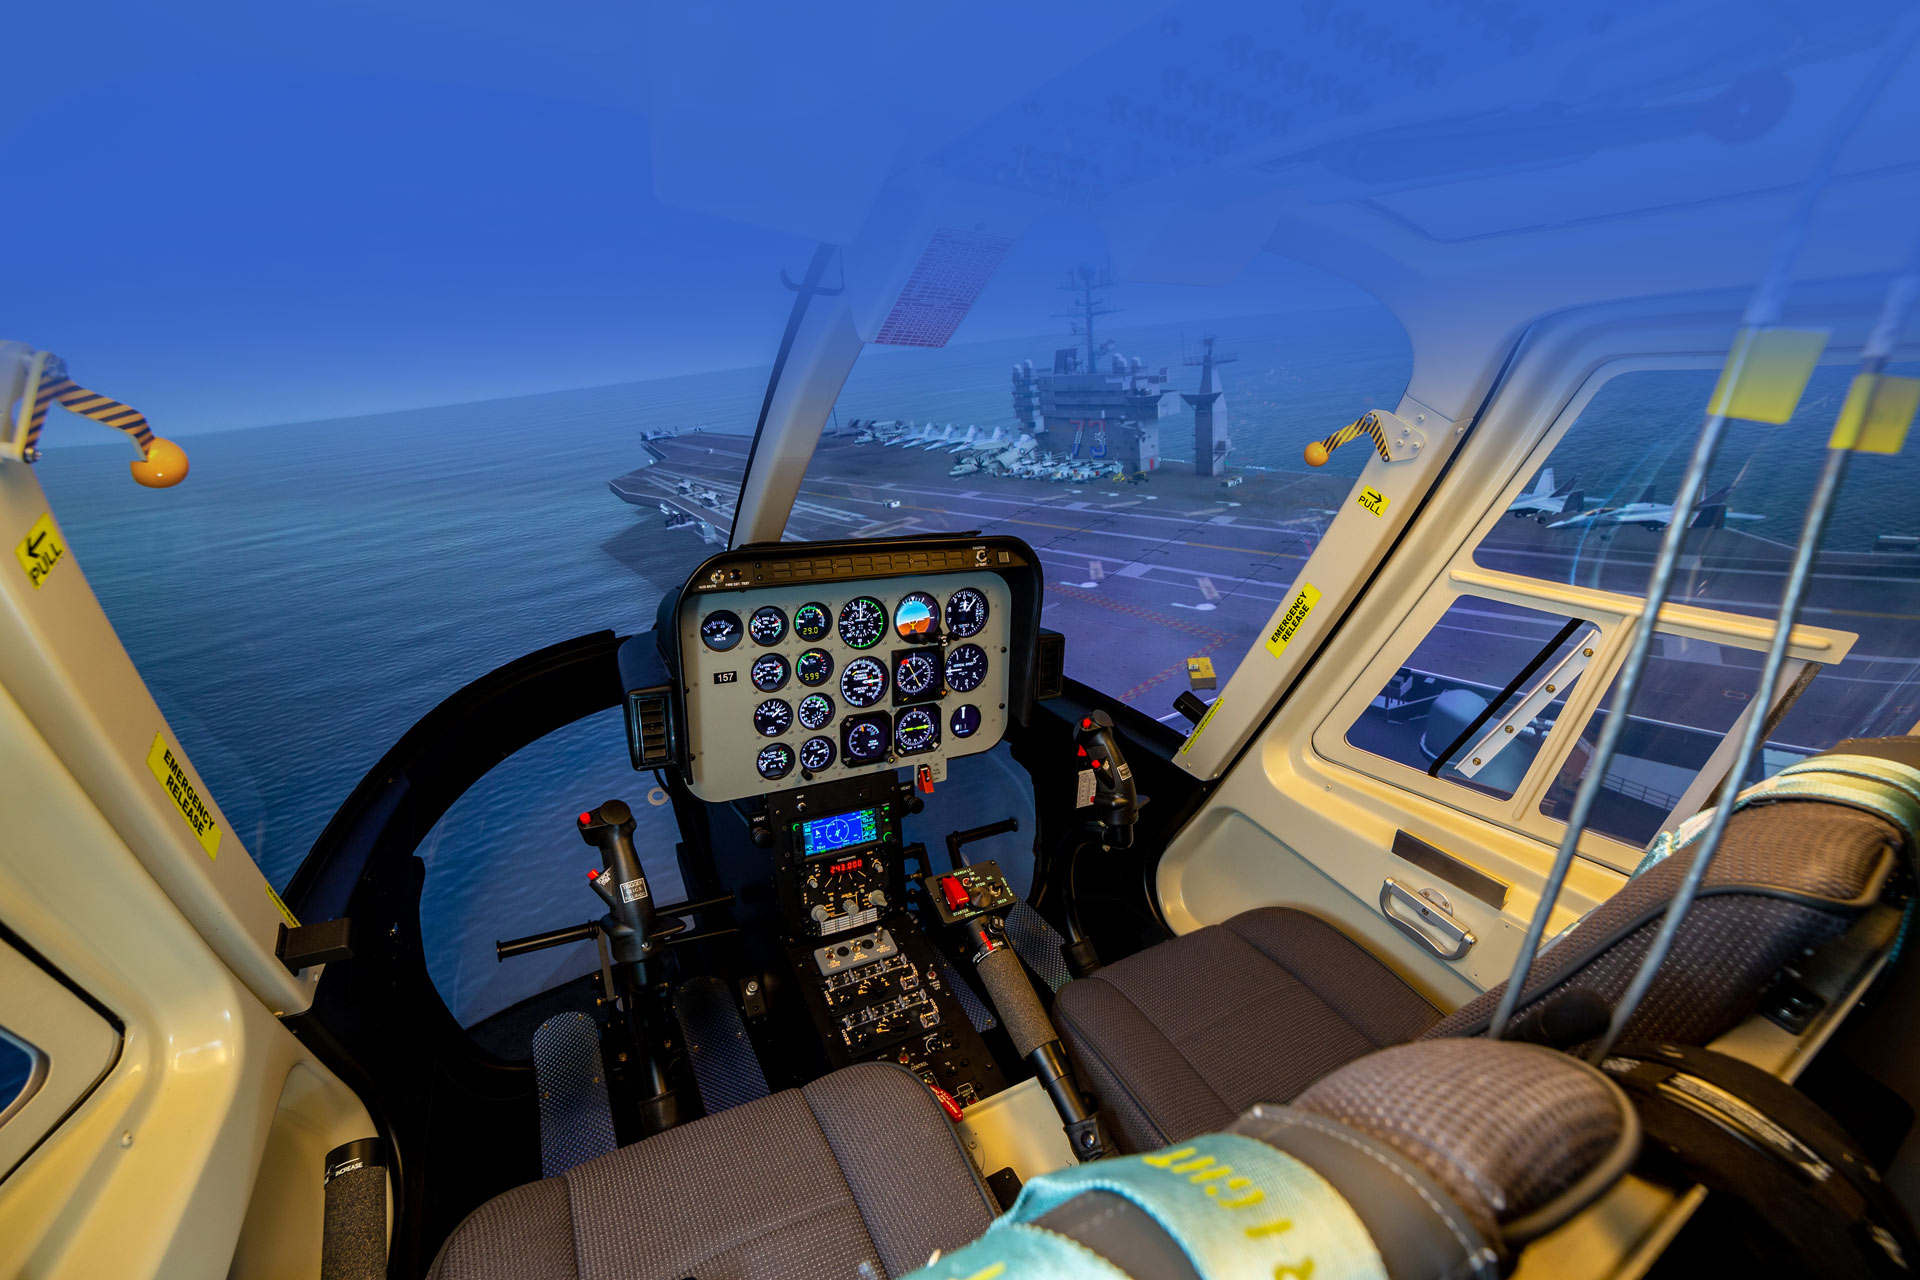 Frasca TH-57 Flight Simulator on Carrier